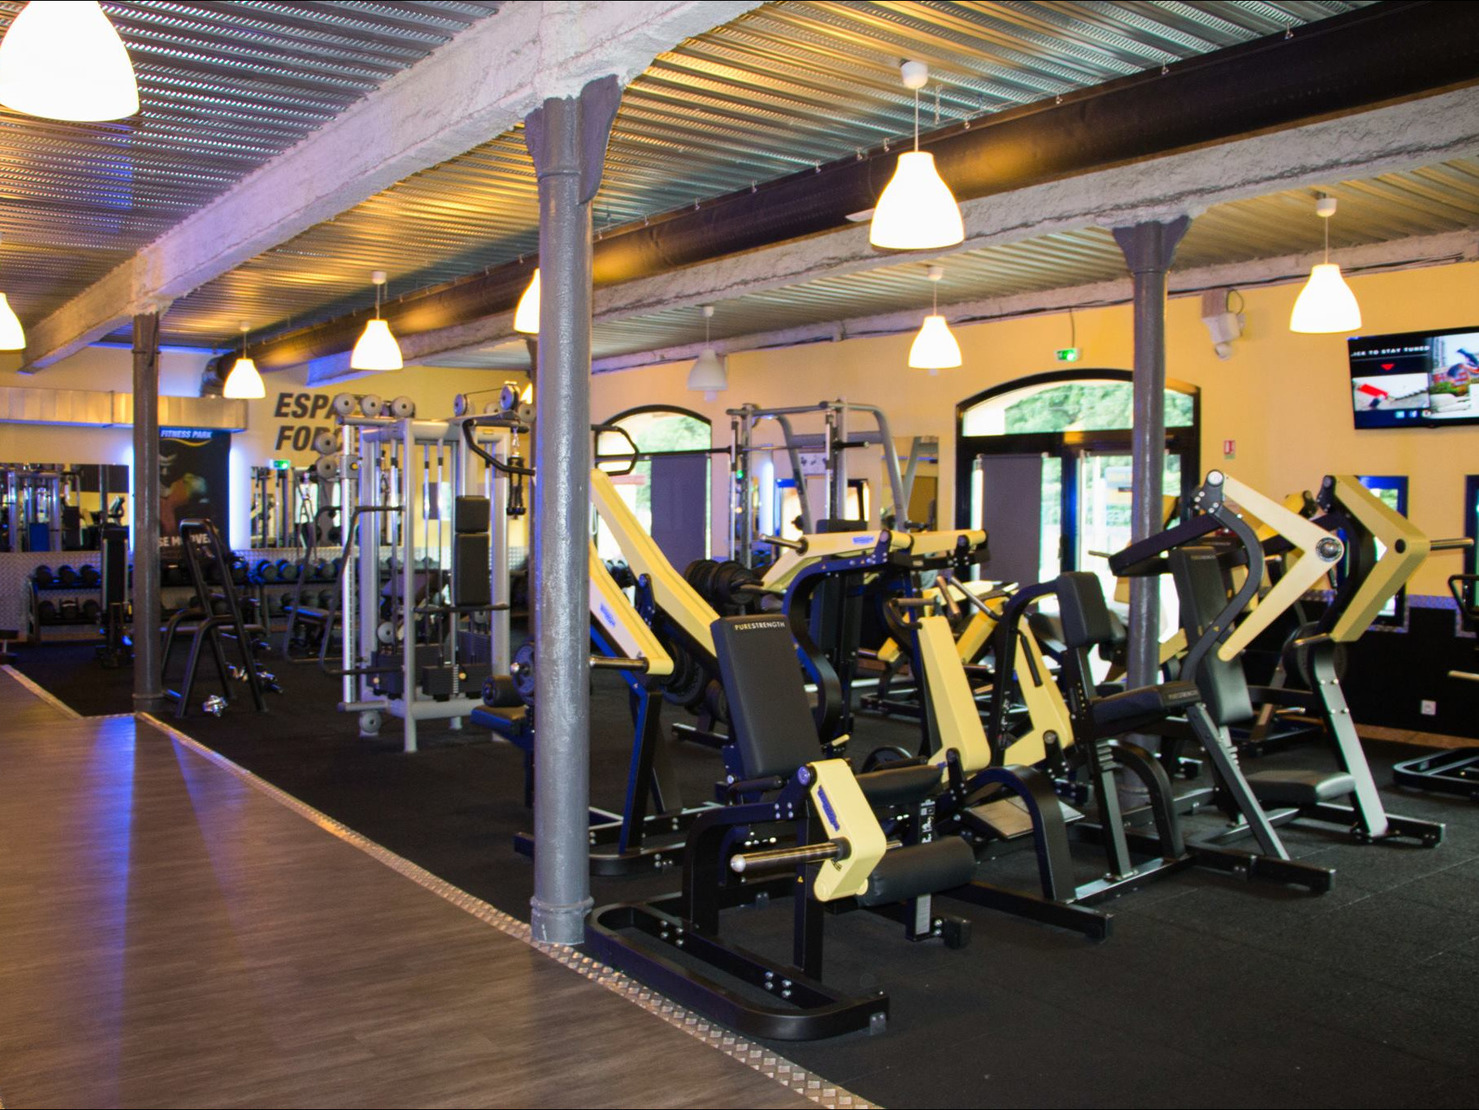 fitness park metz tarifs avis horaires essai gratuit. Black Bedroom Furniture Sets. Home Design Ideas